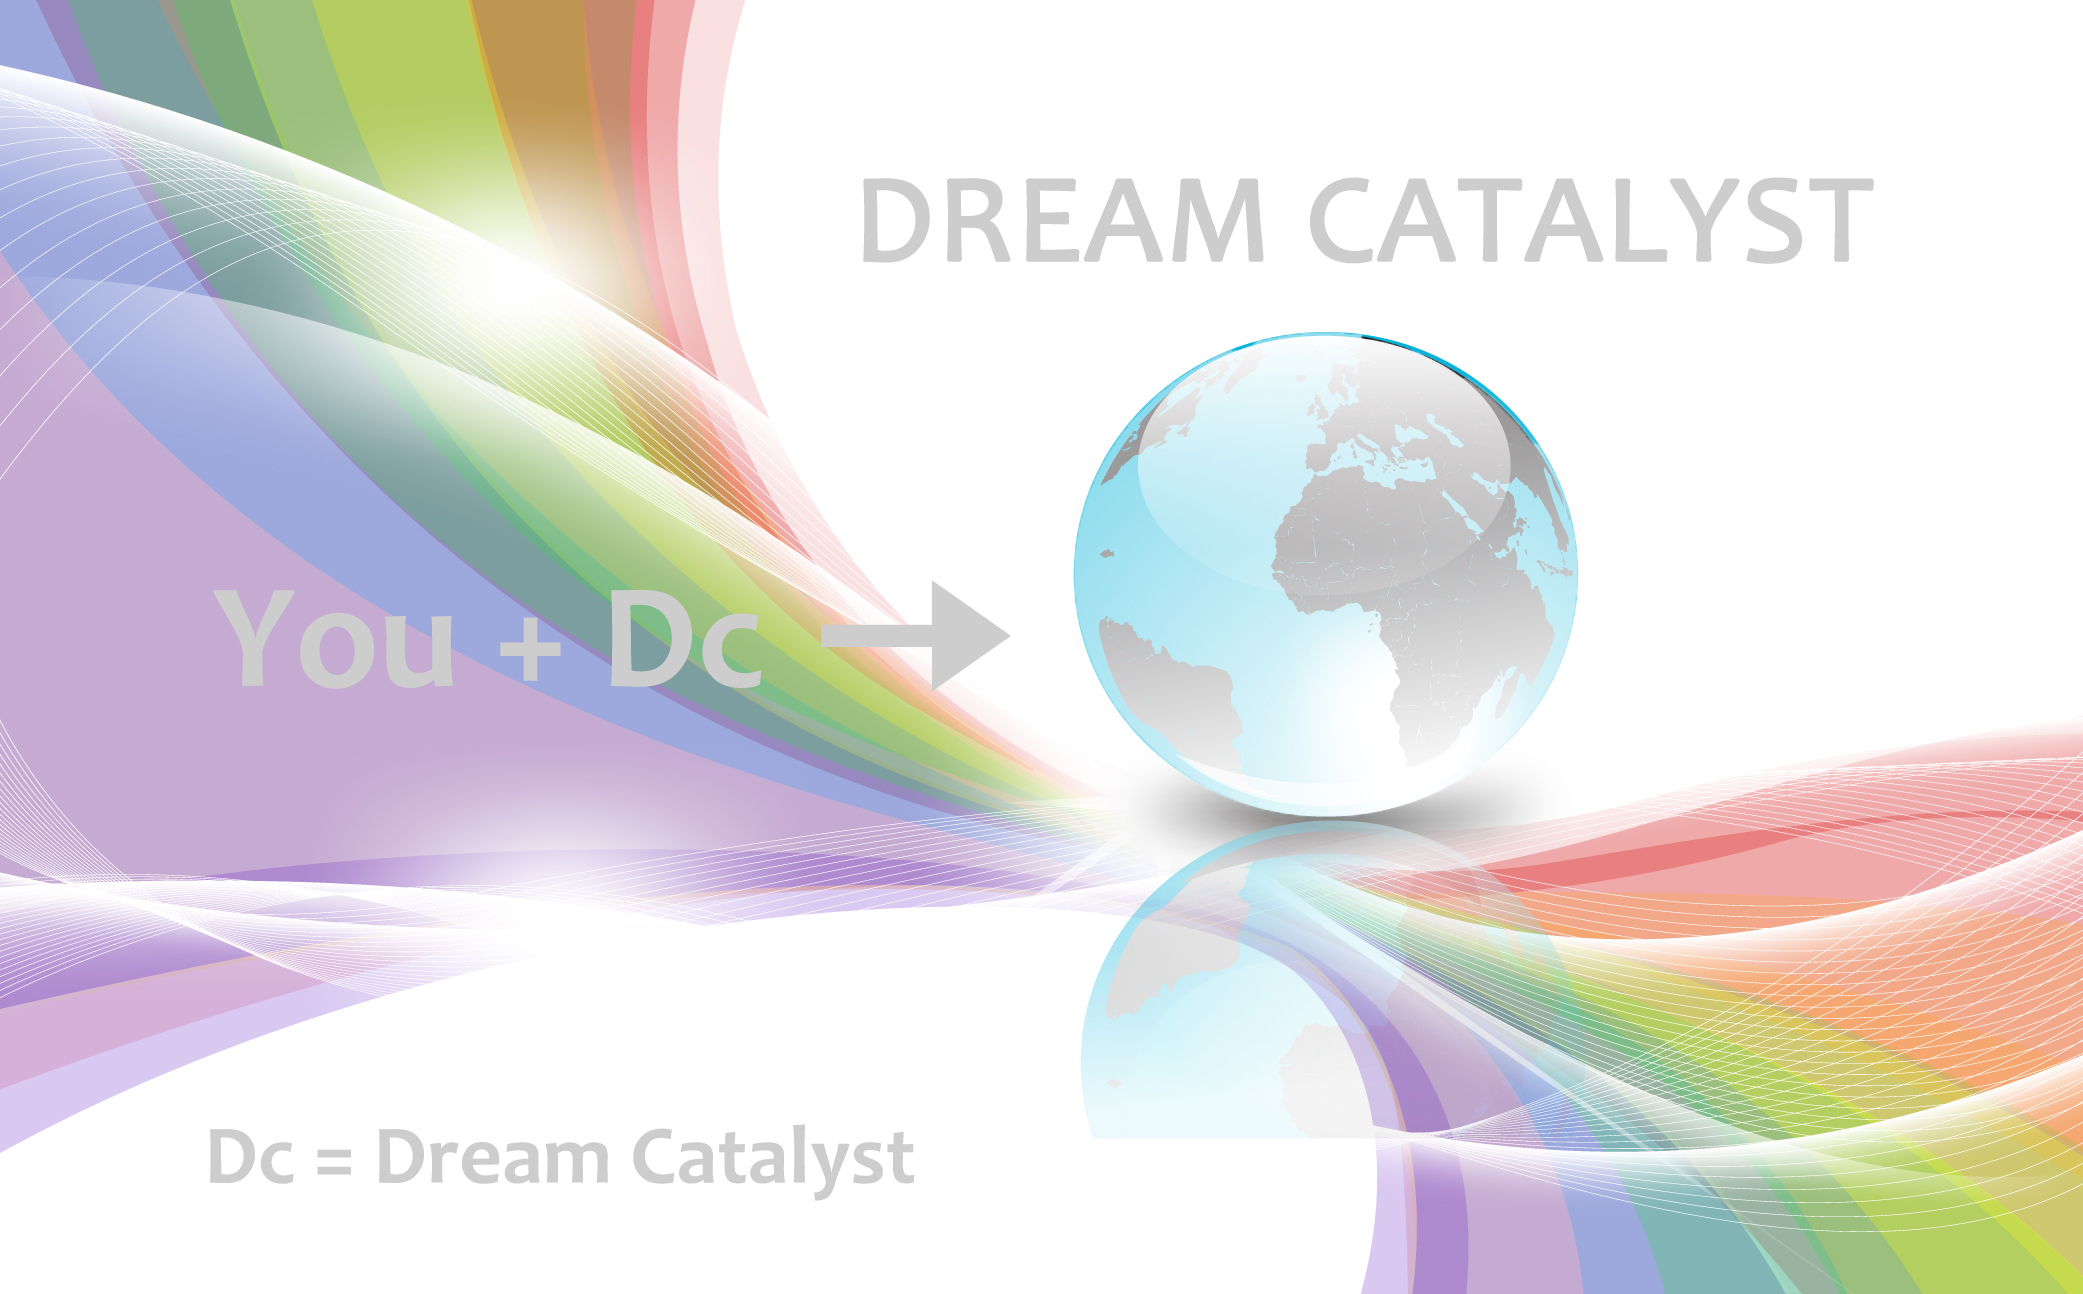 Dream Catalyst